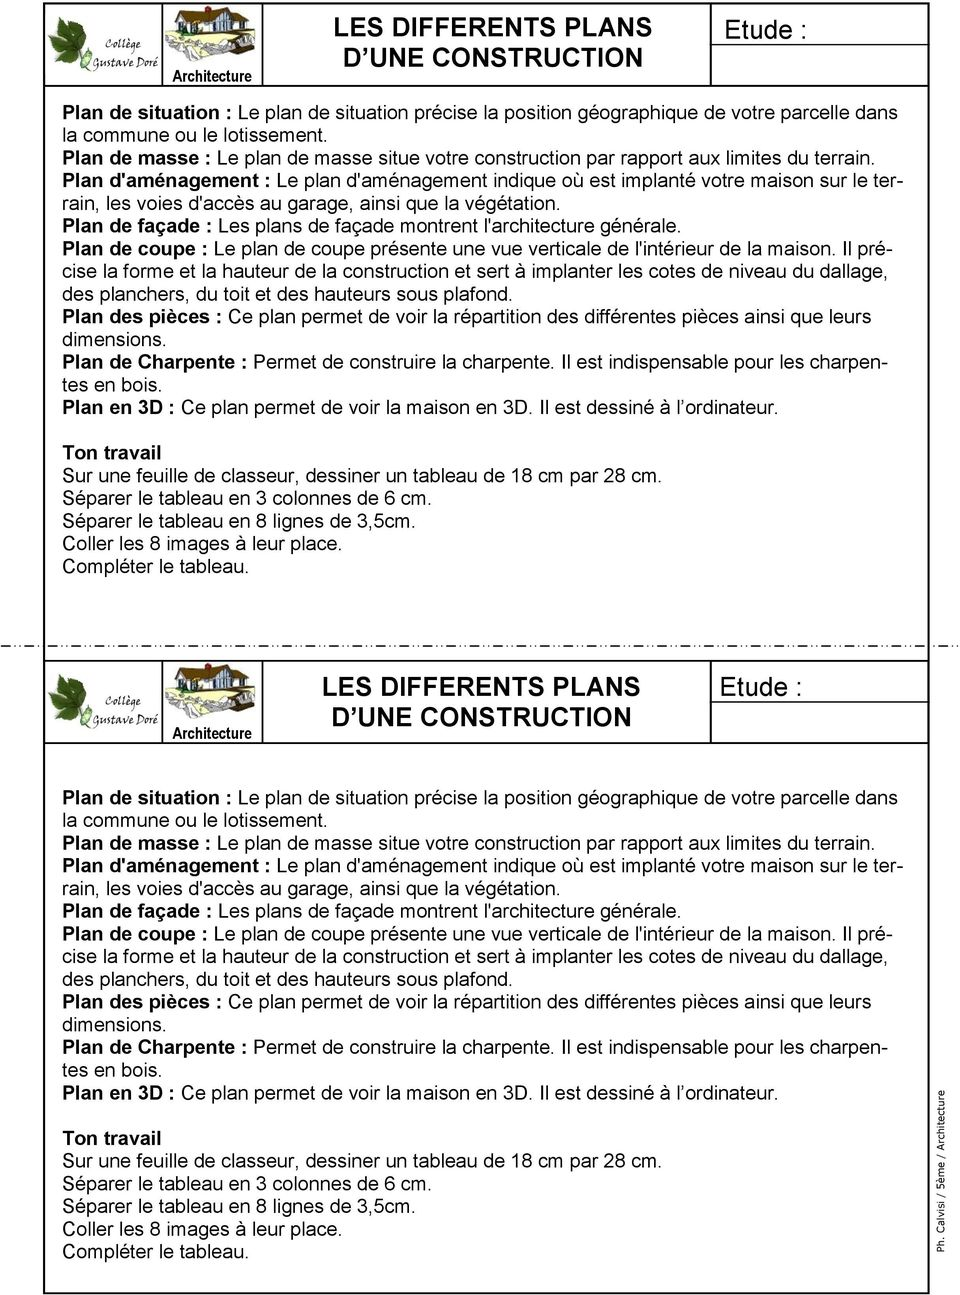 Les differents plans d une construction les differents for Les plans de lowe